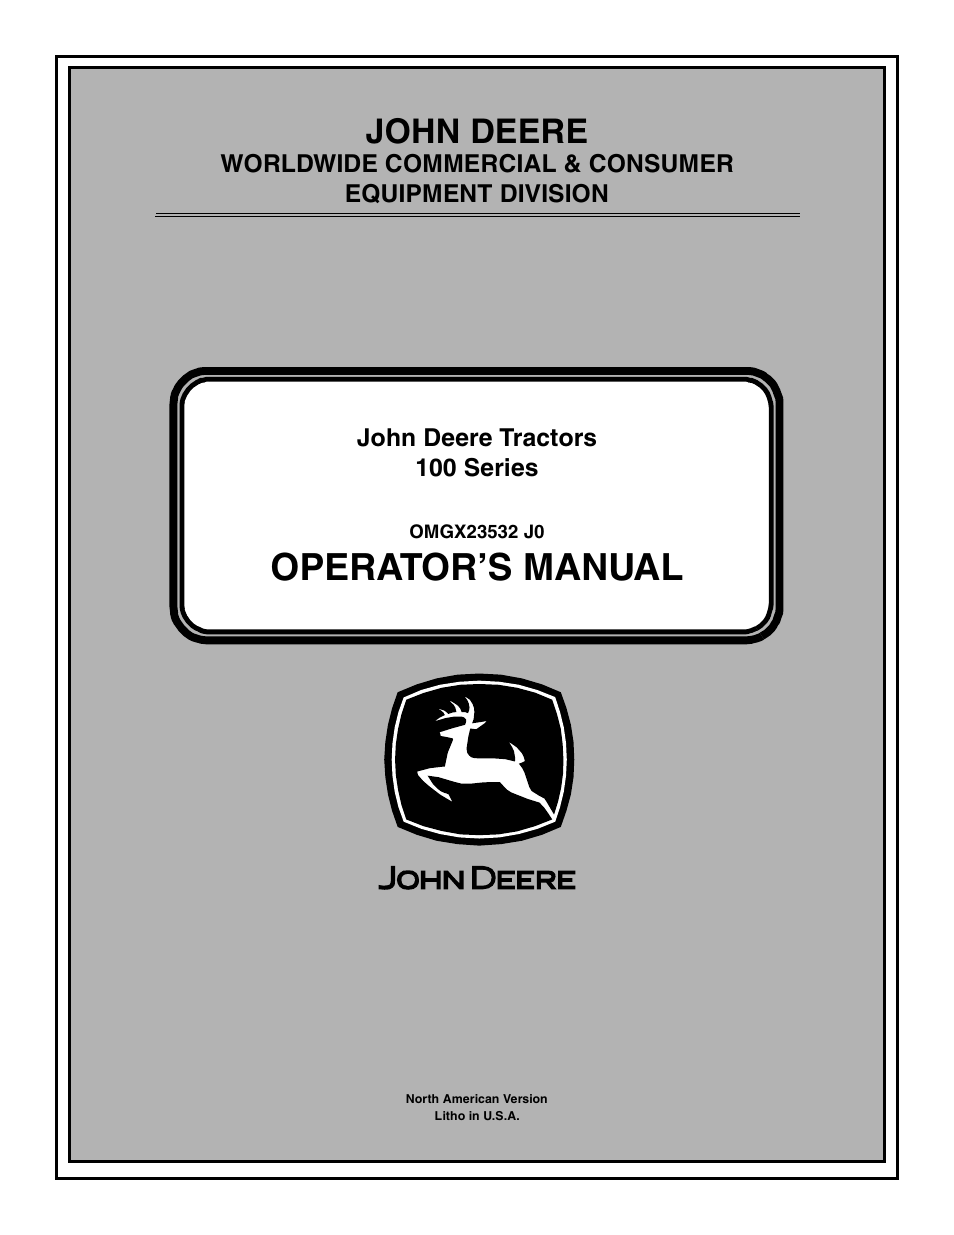 john deere d140 owners manual open source user manual u2022 rh dramatic varieties com john deere service manual d140 John Deere D140 Specs